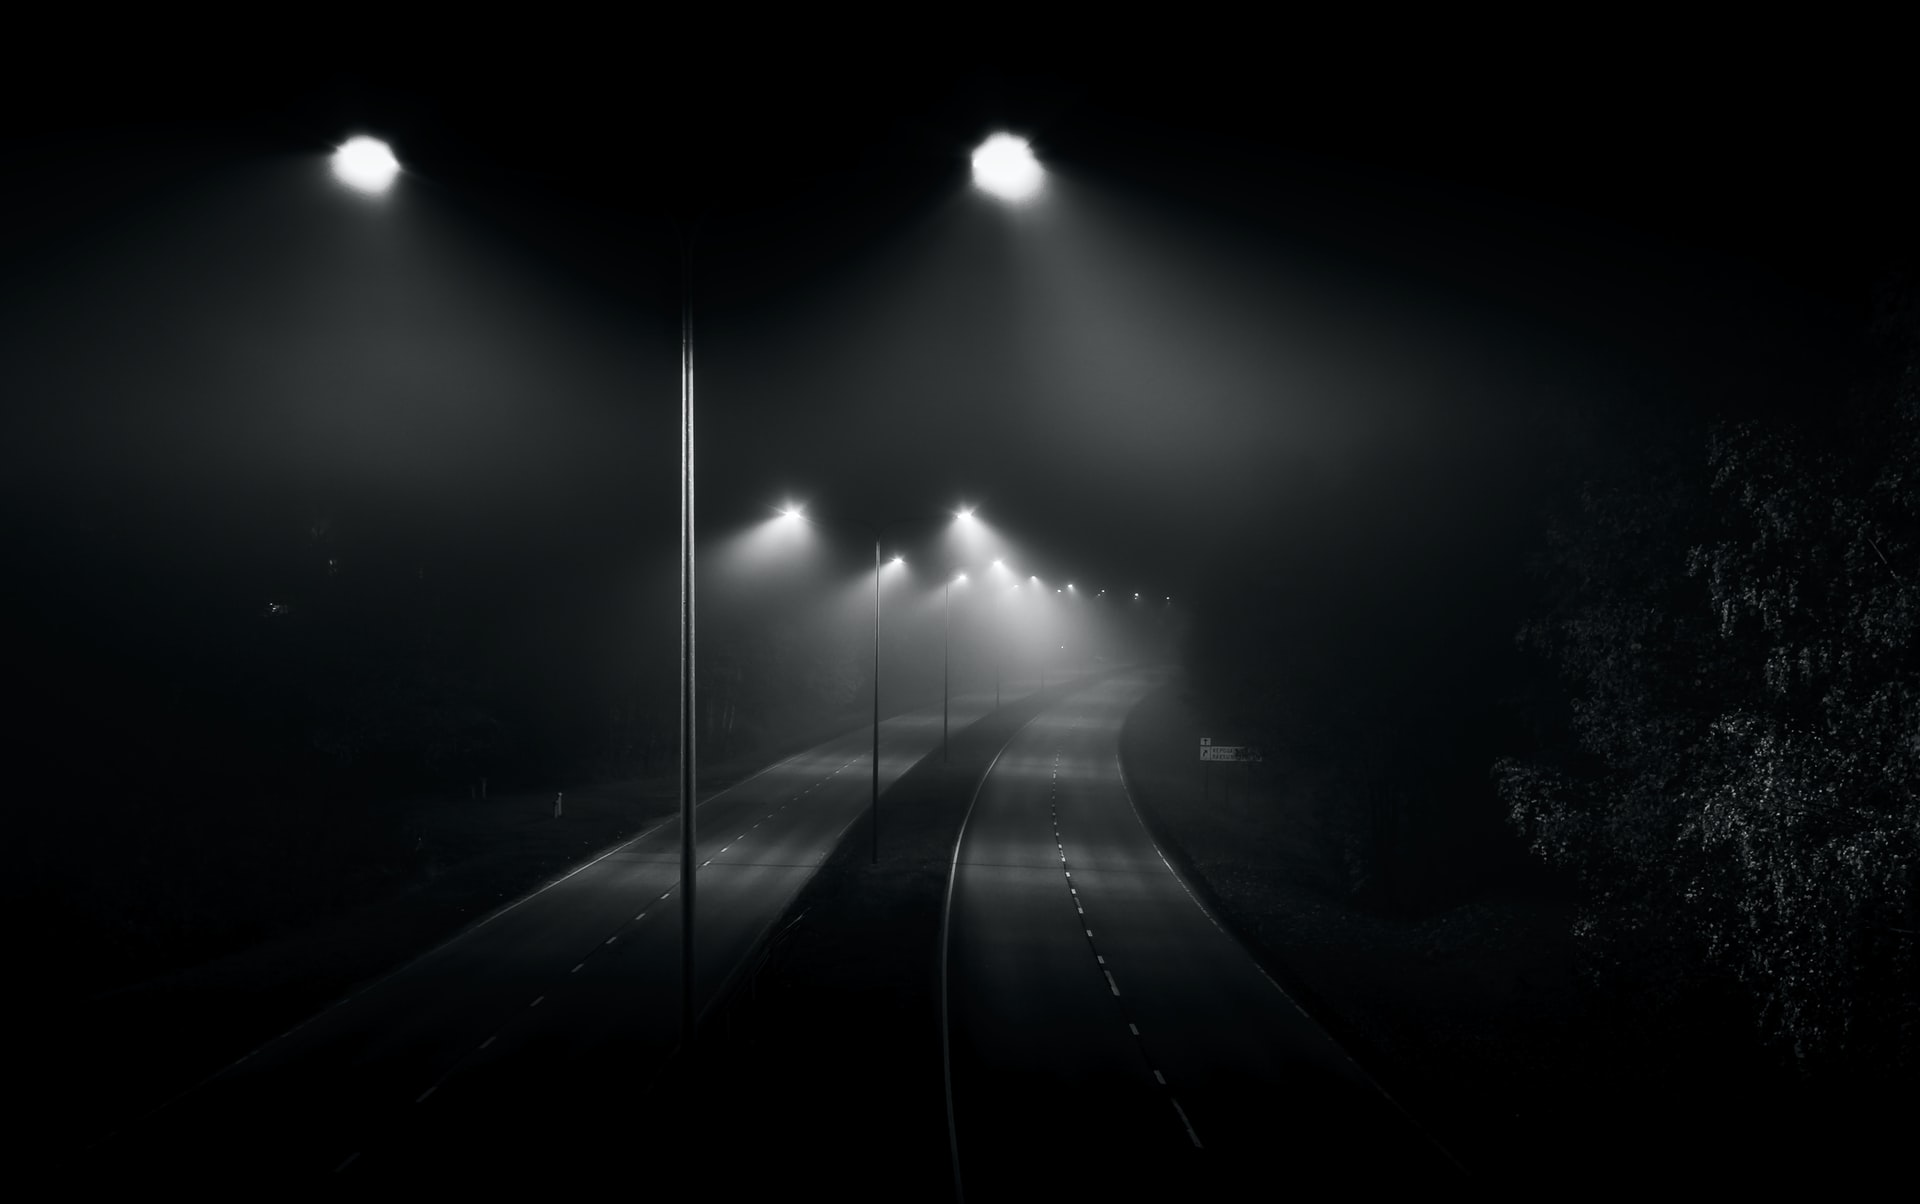 Foggy street at nighttime. Tools used to evaluate racial disparities in traffic stops.